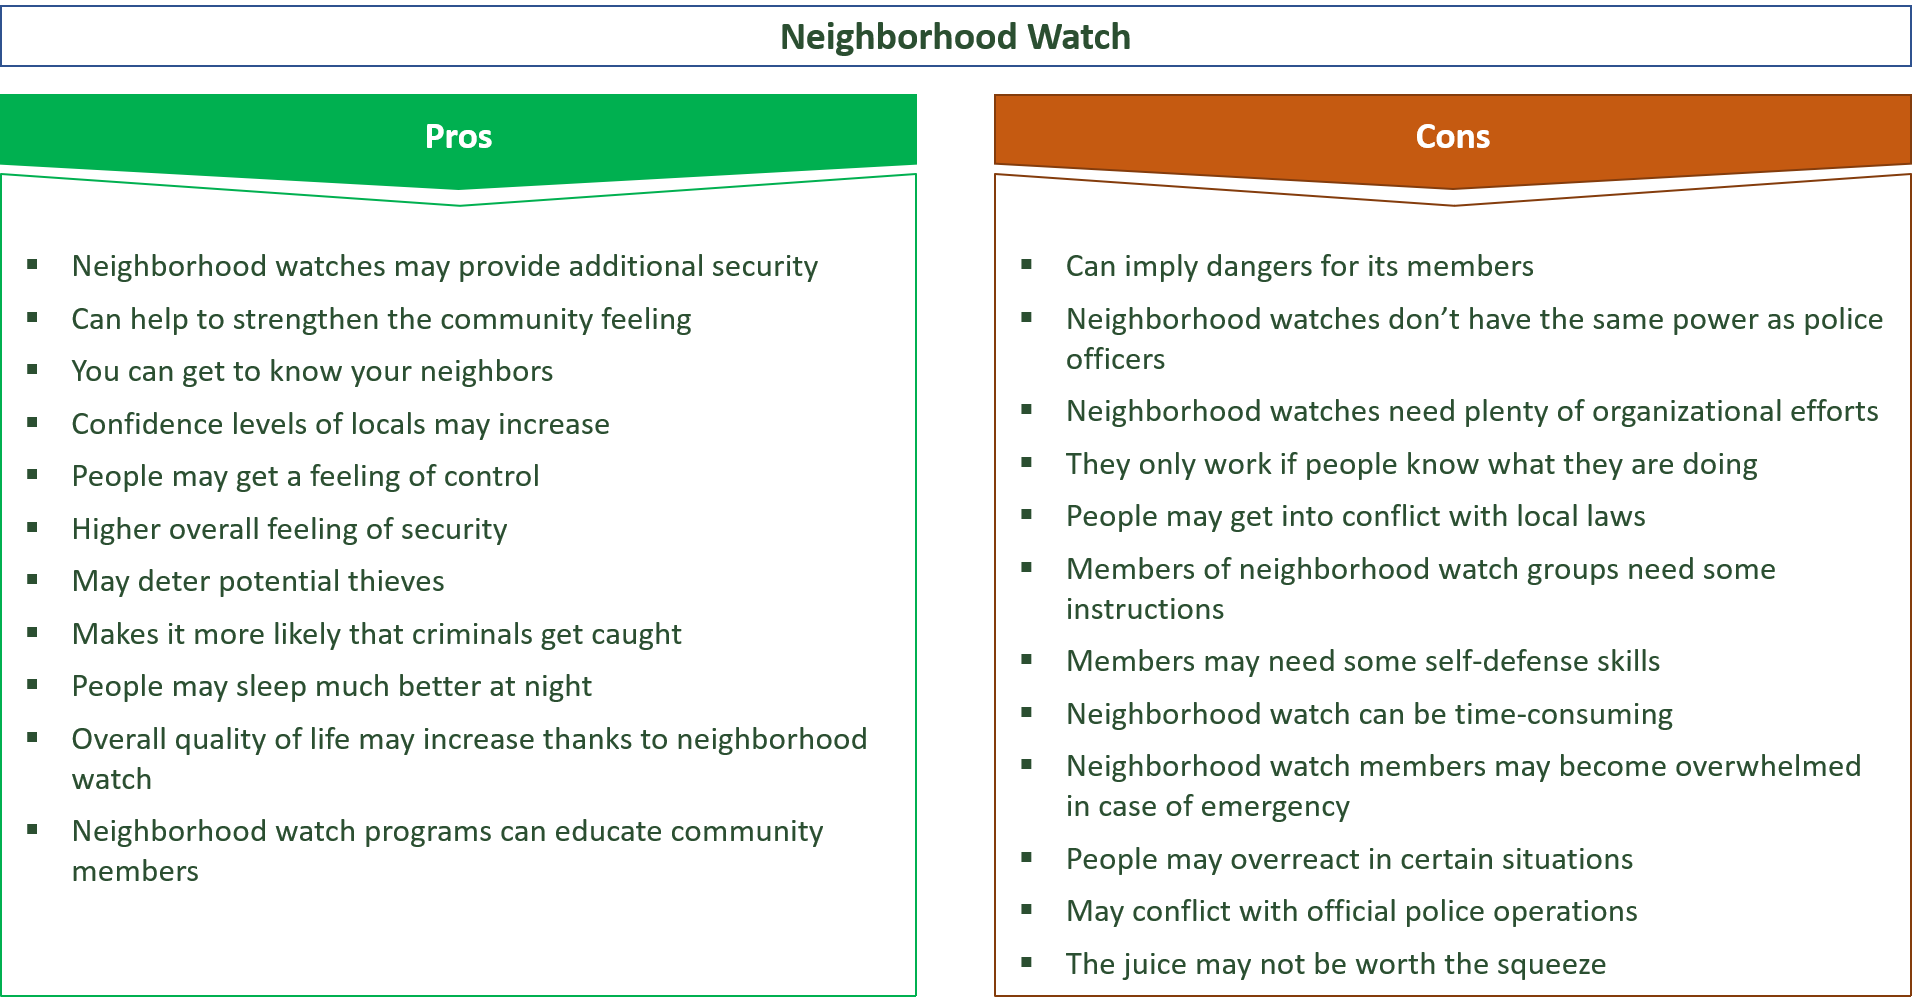 advantages and disadvantages of neighborhood watch